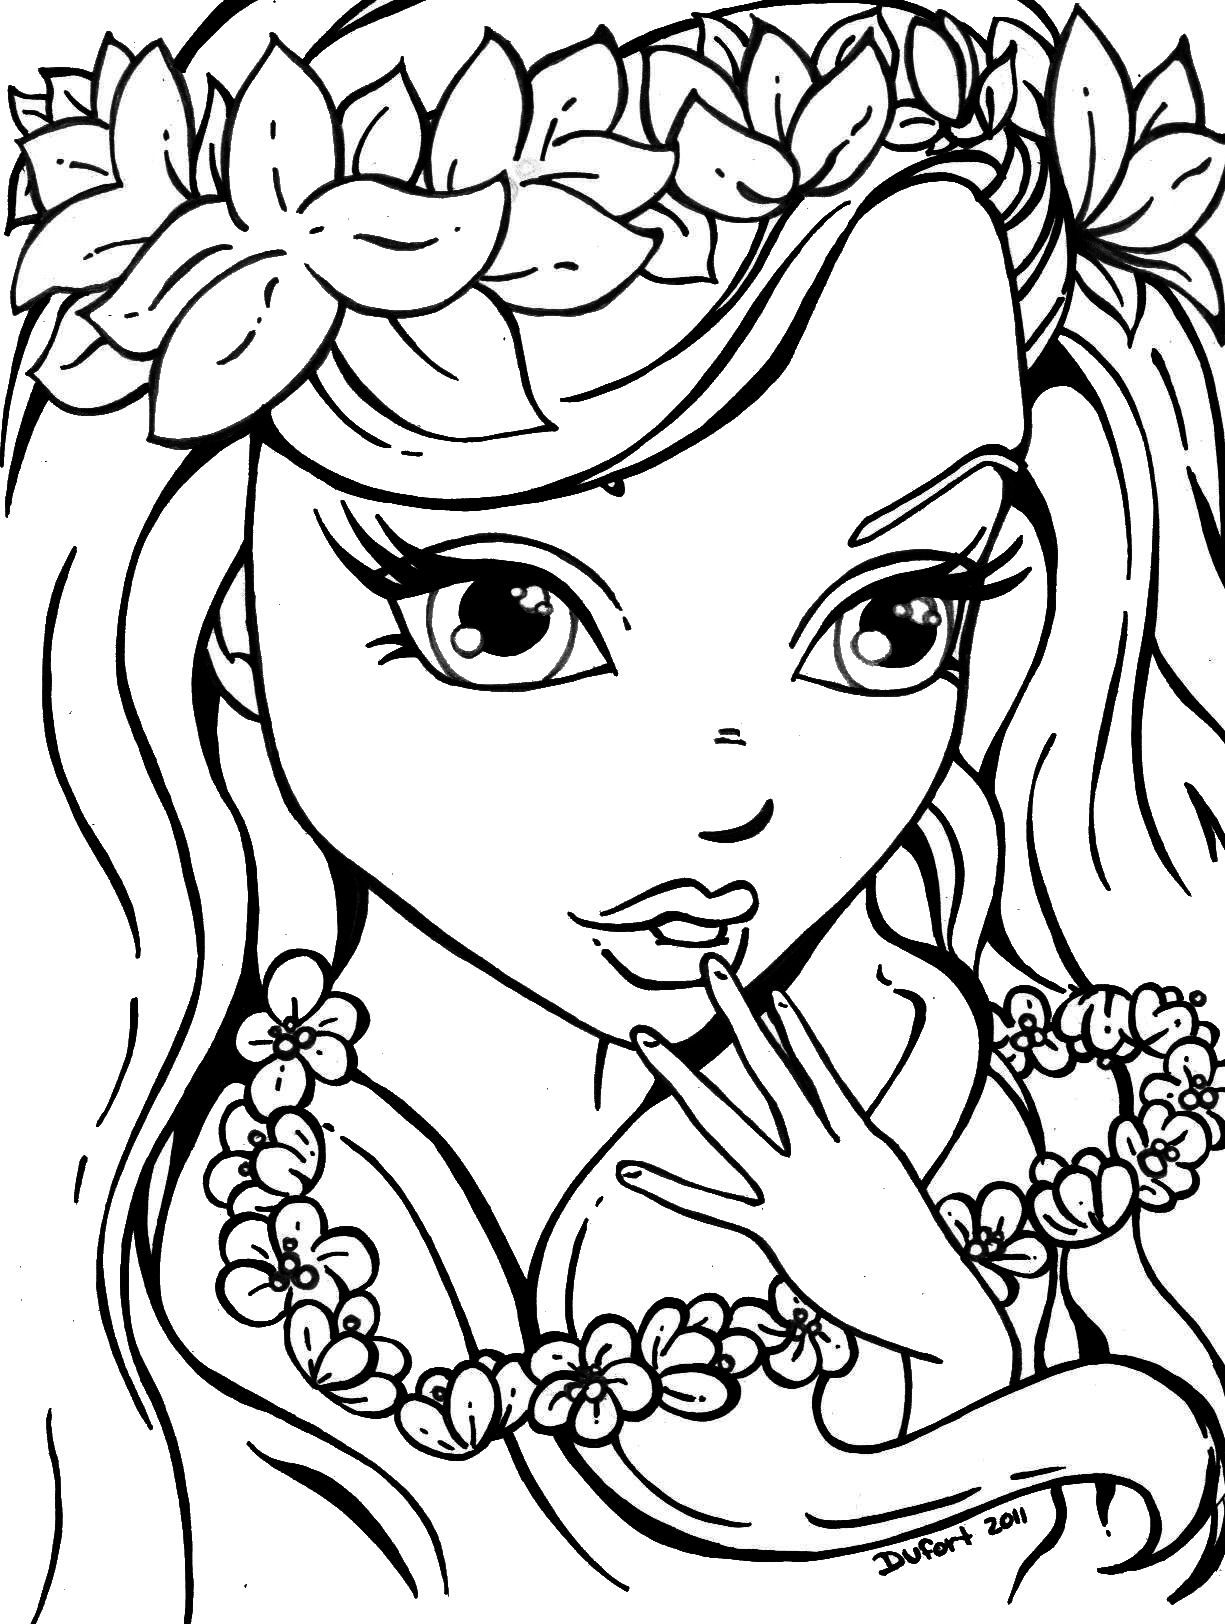 Print out coloring pages for girls - Girl Coloring Pages To Print